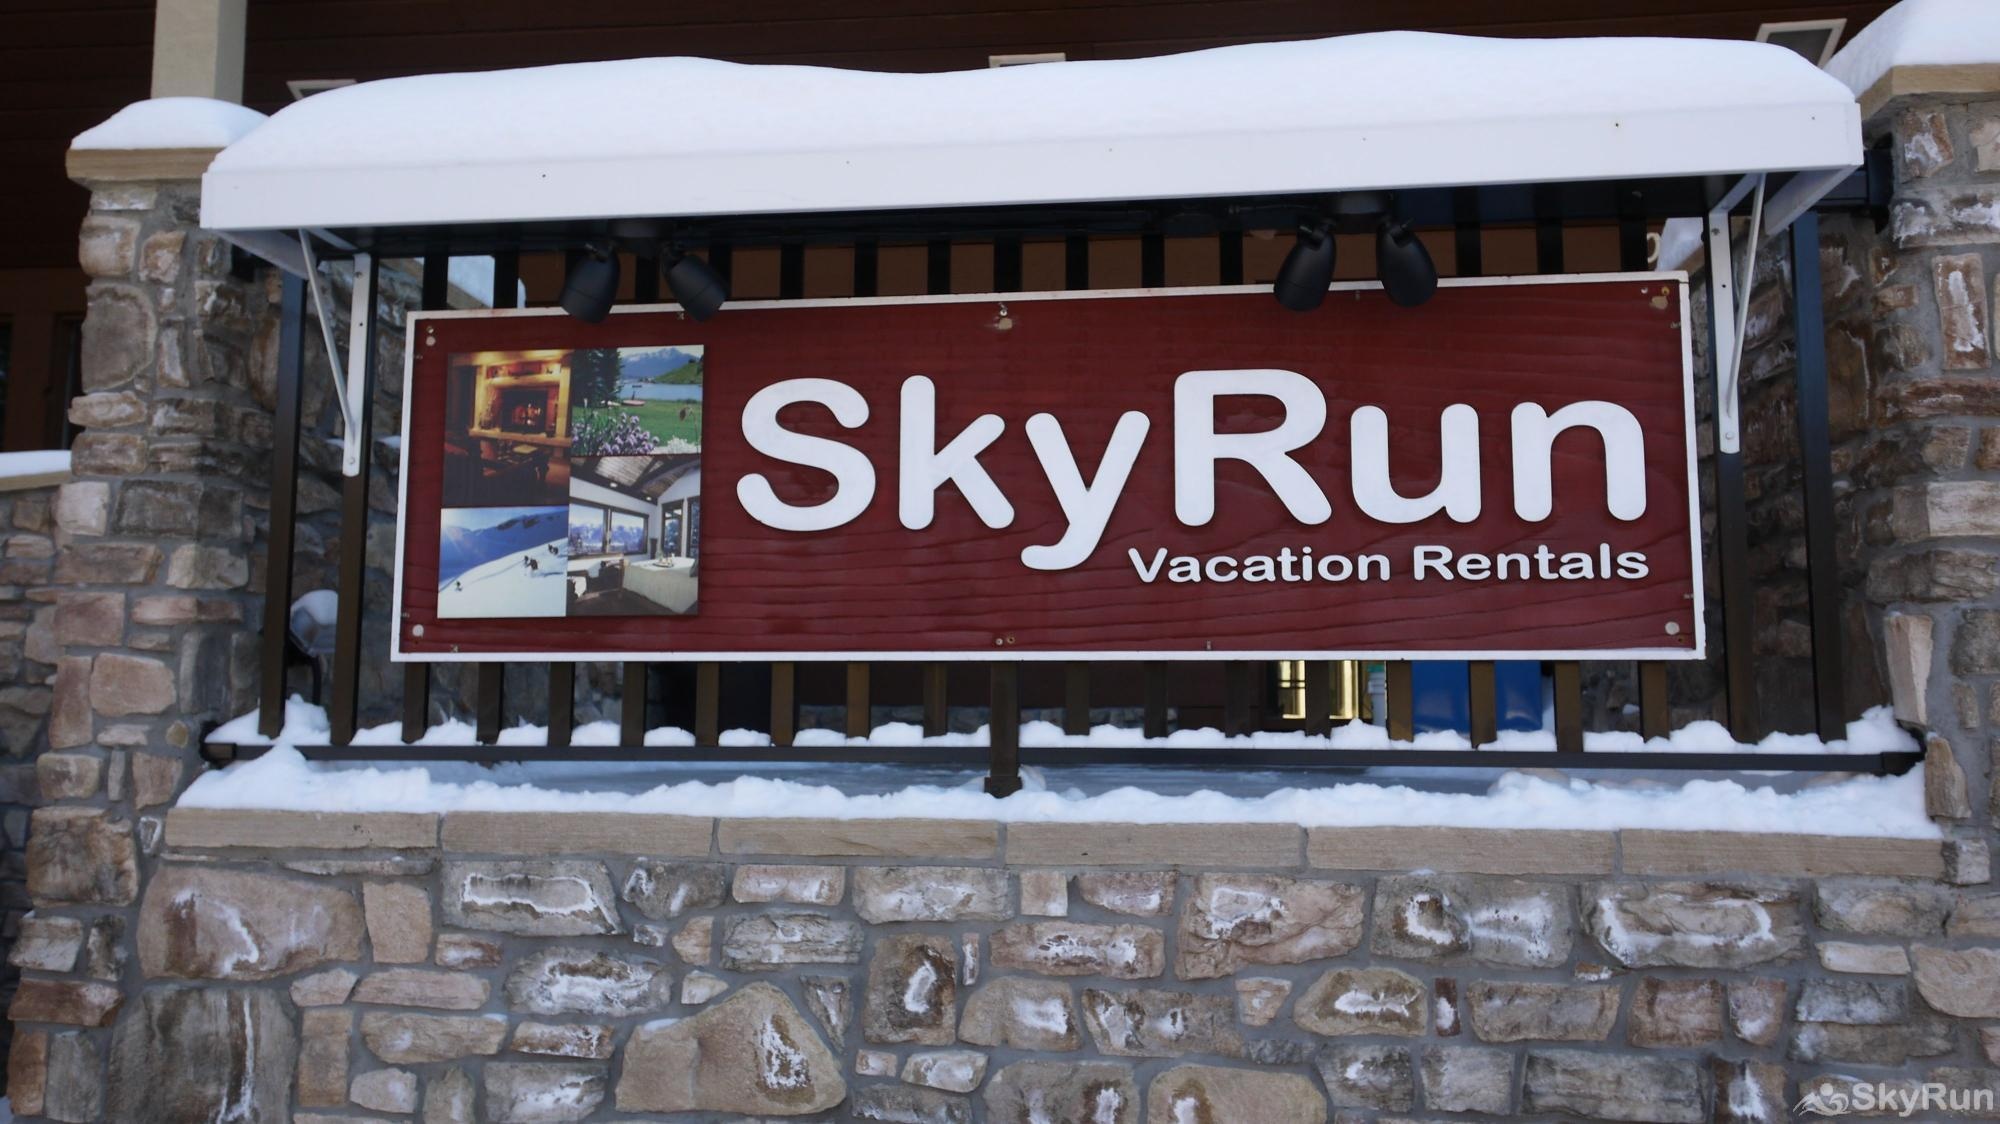 MC204 Mill Club Thank you for choosing SkyRun!